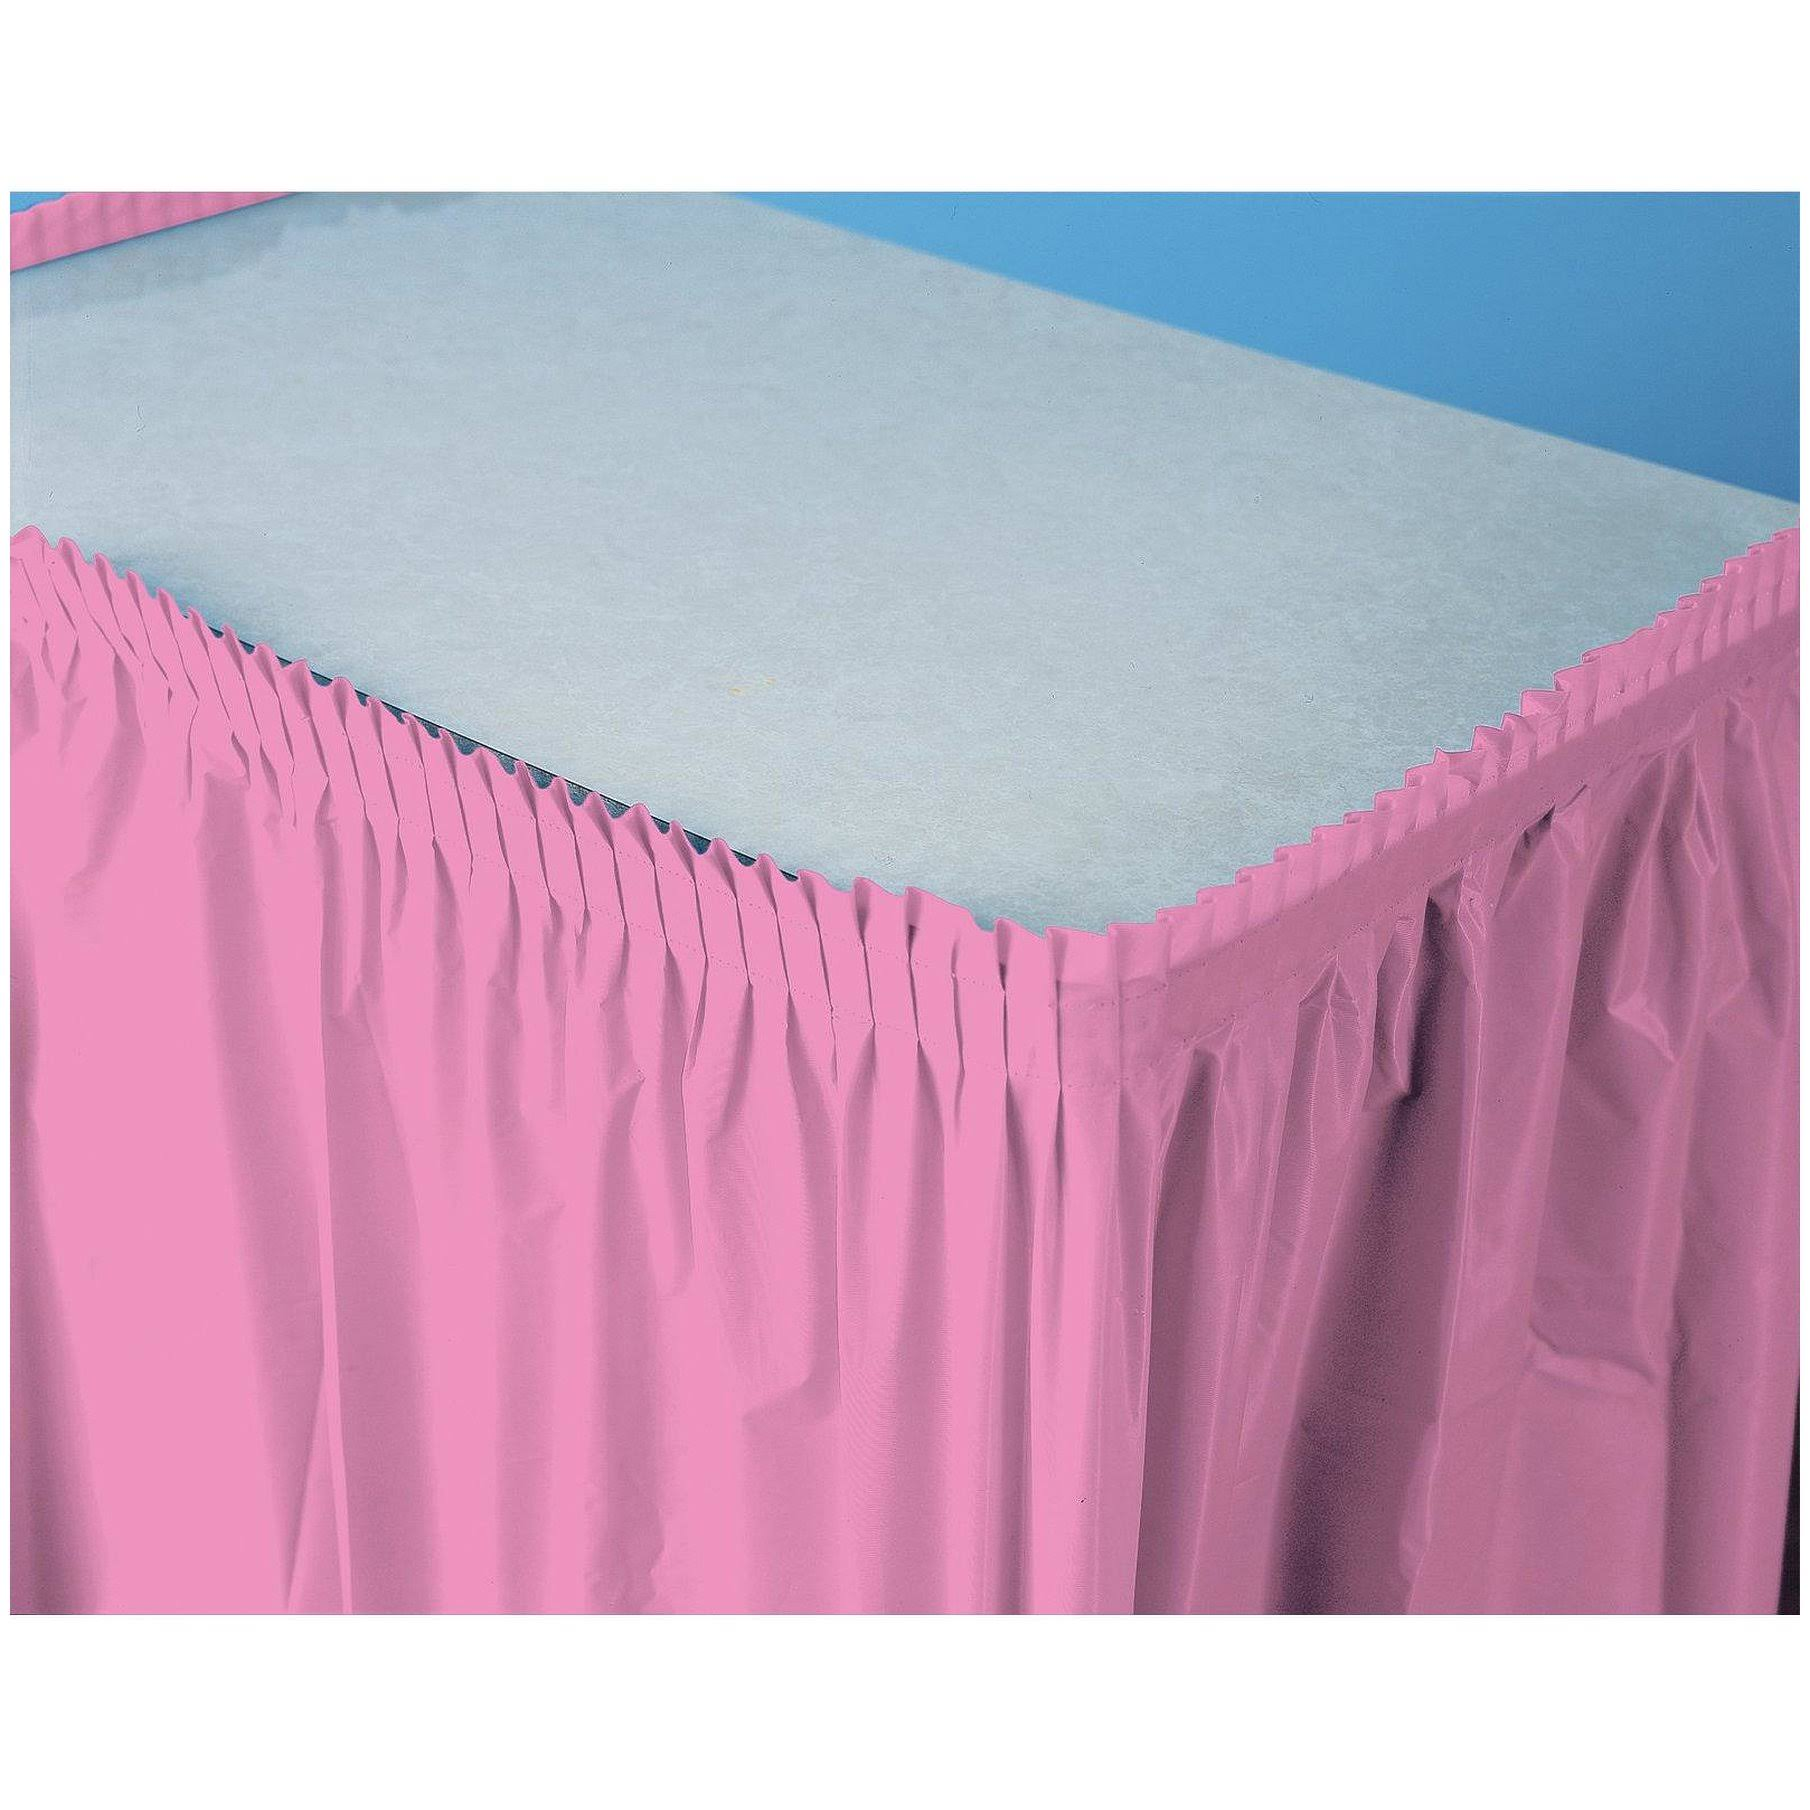 Creative Converting Plastic Table Skirt - 14', Candy Pink